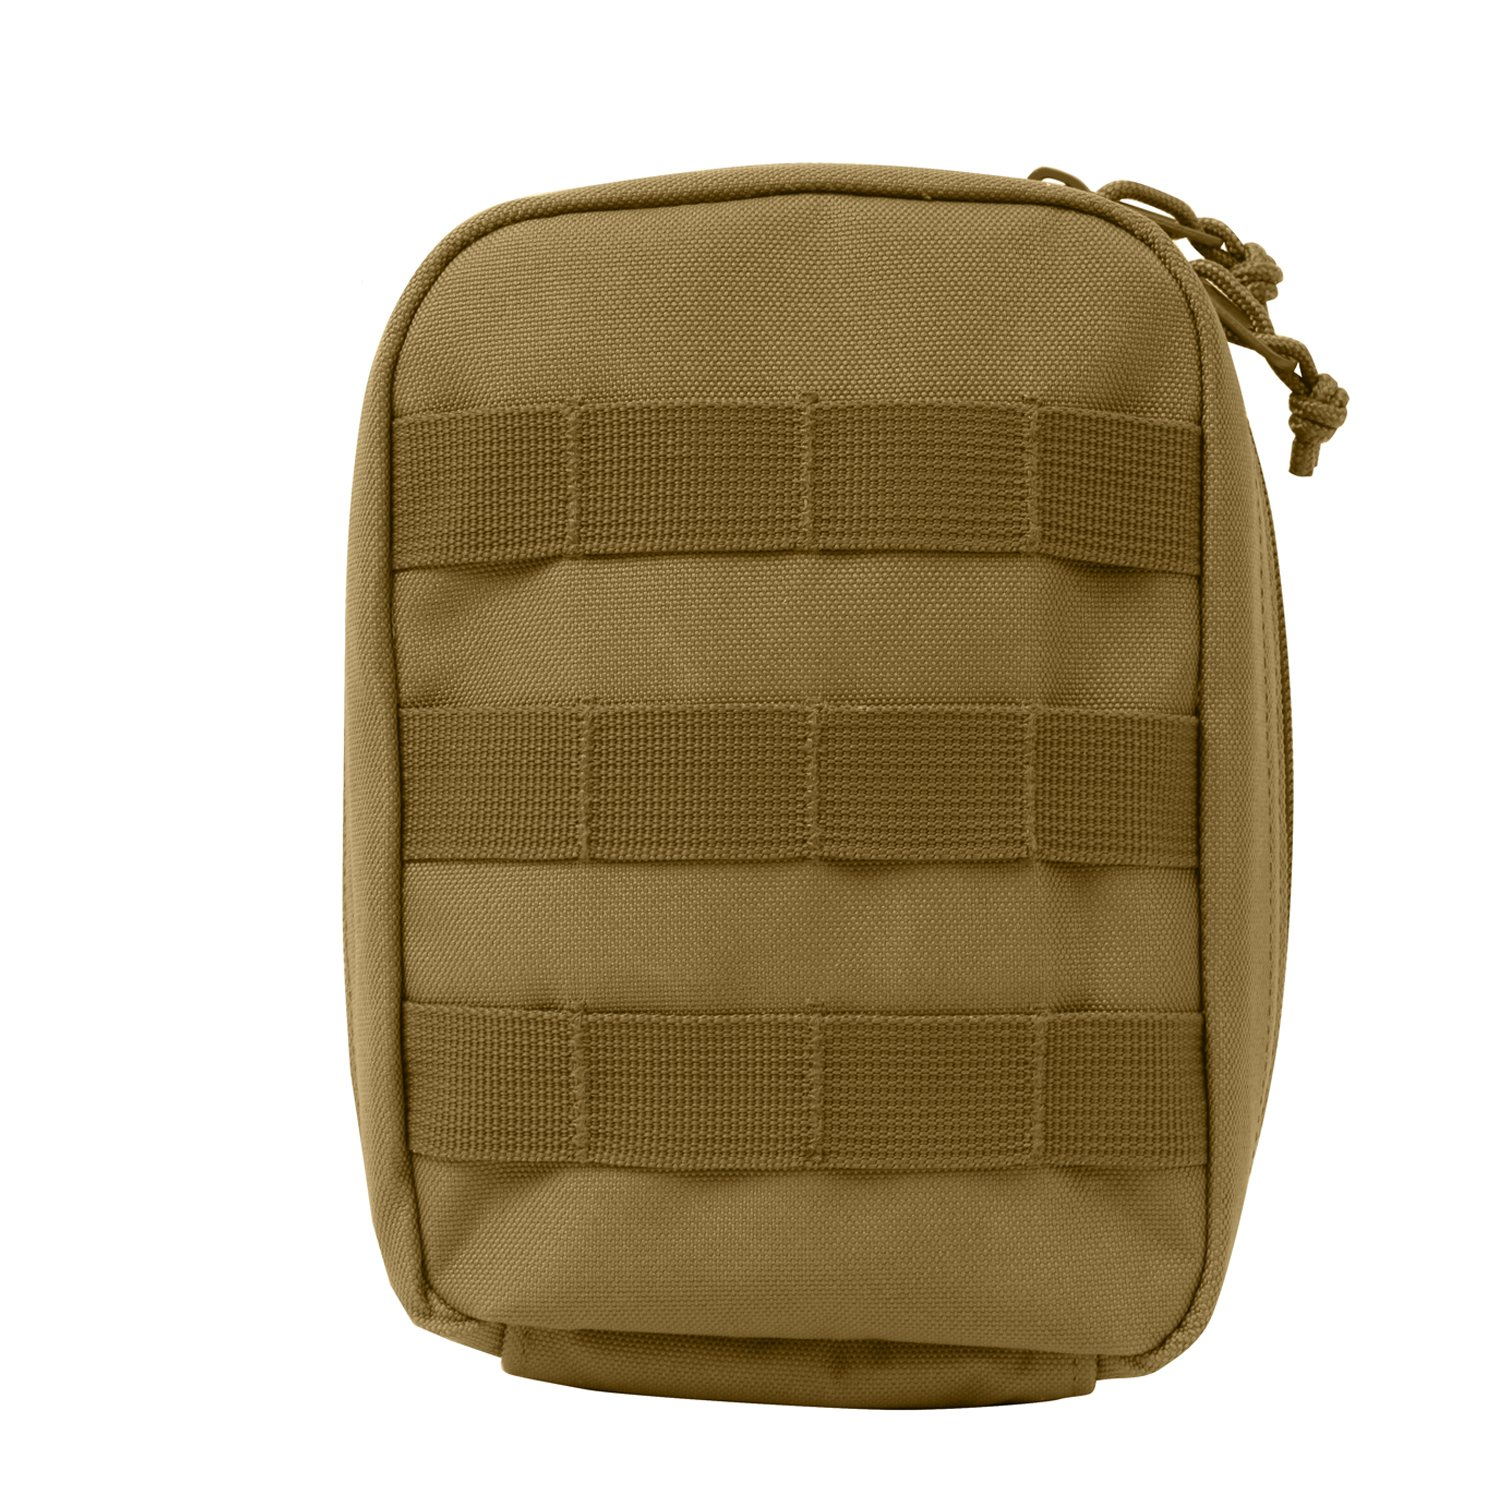 Rothco Molle Tactical Trauma Kit, Coyote